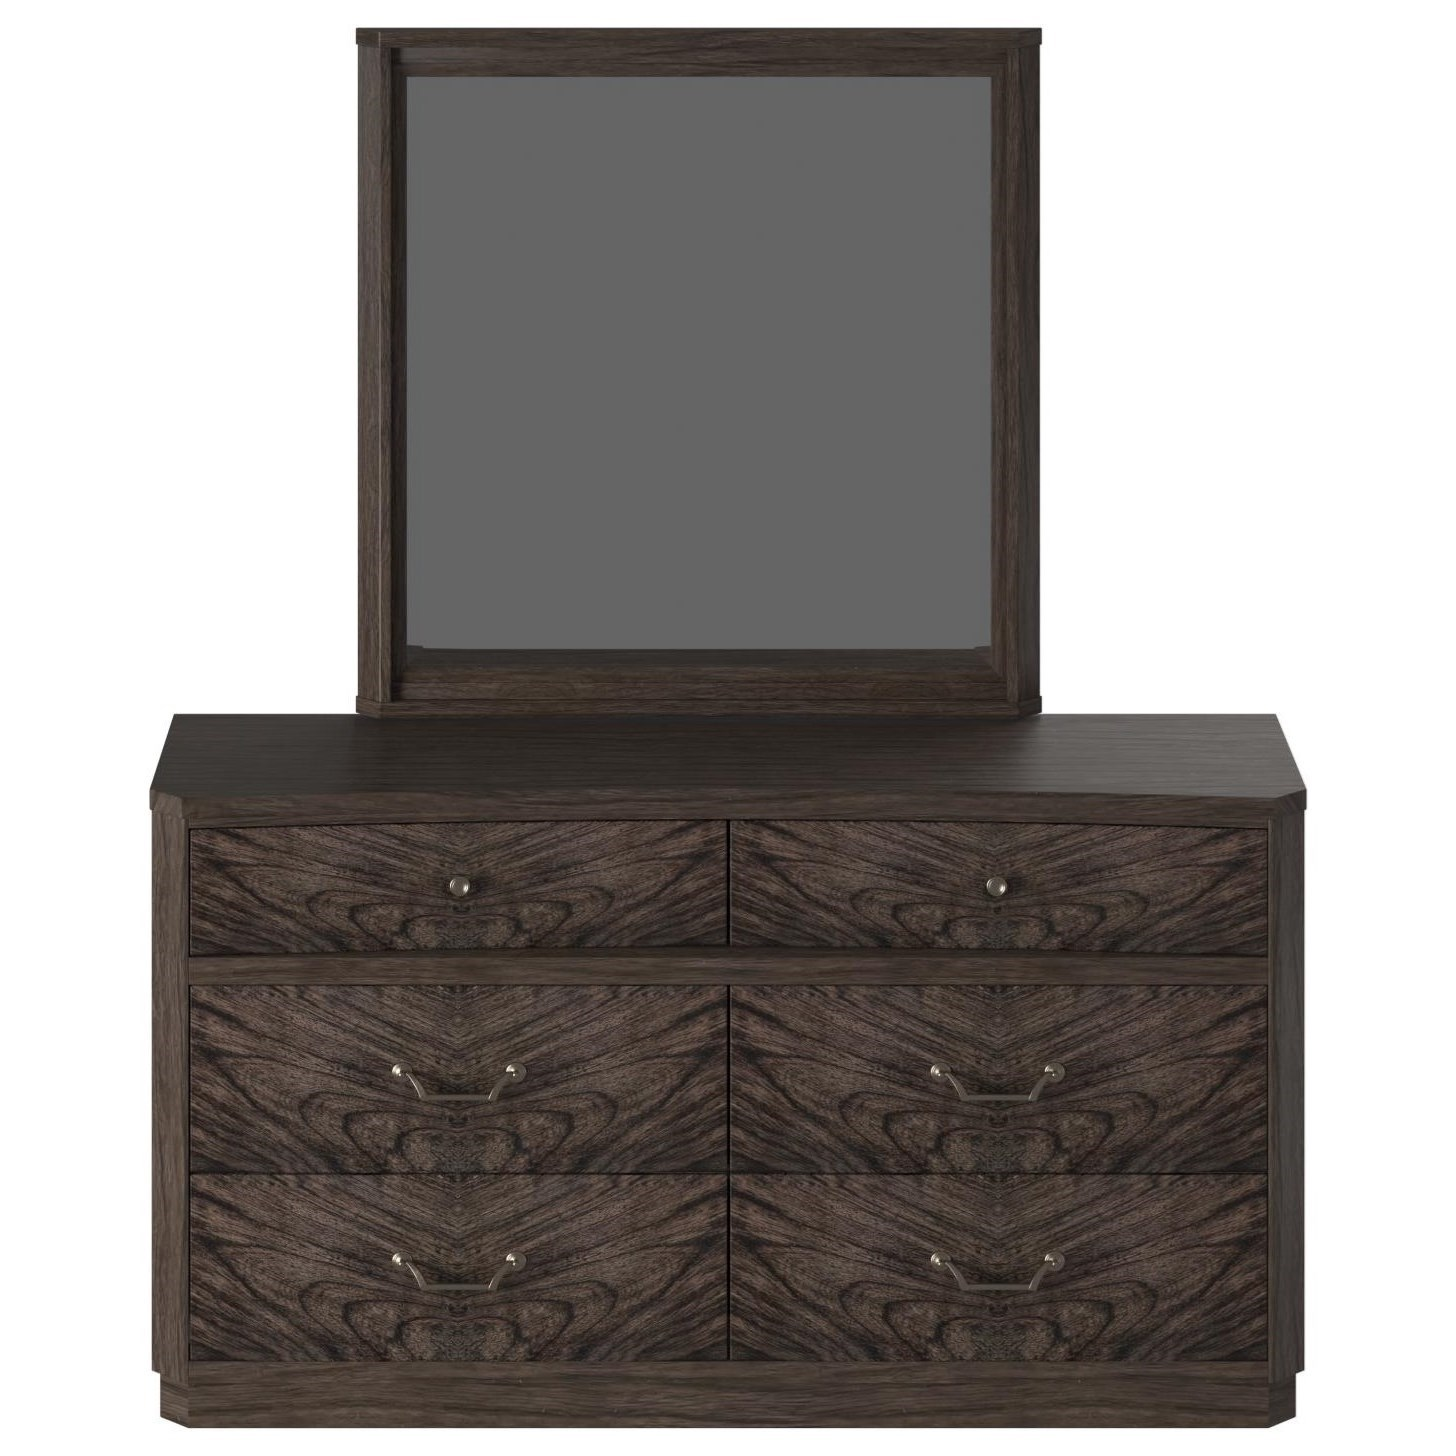 Silhouette Dresser and Mirror Set by American Woodcrafters at Carolina Direct